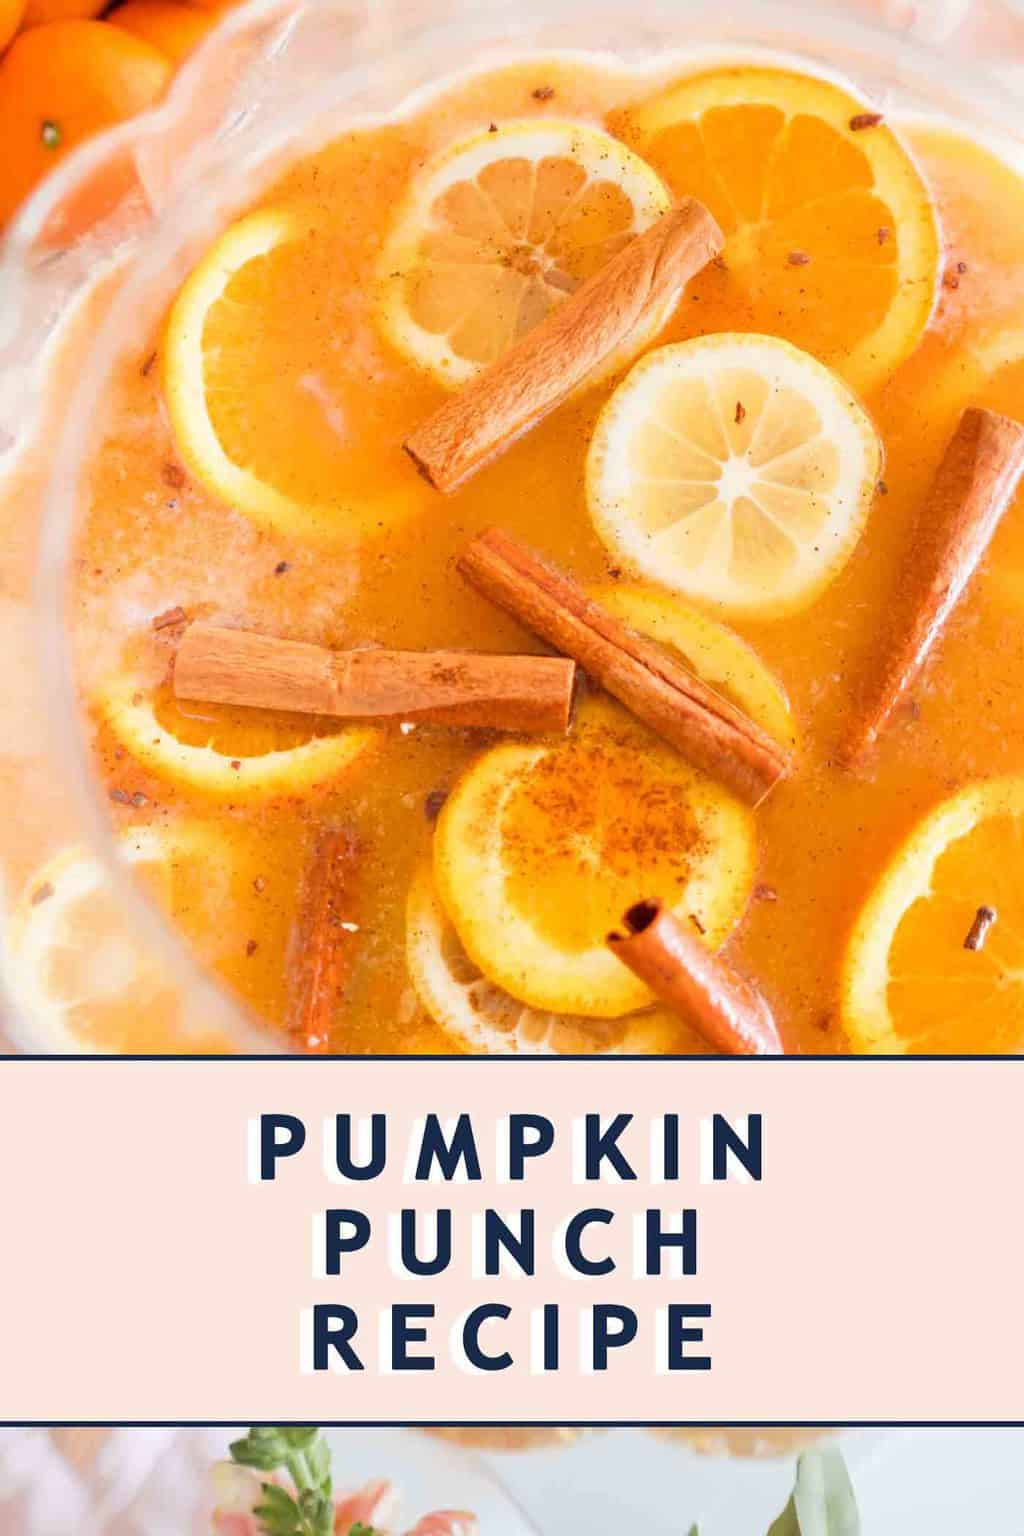 photo of pumpkin punch with text